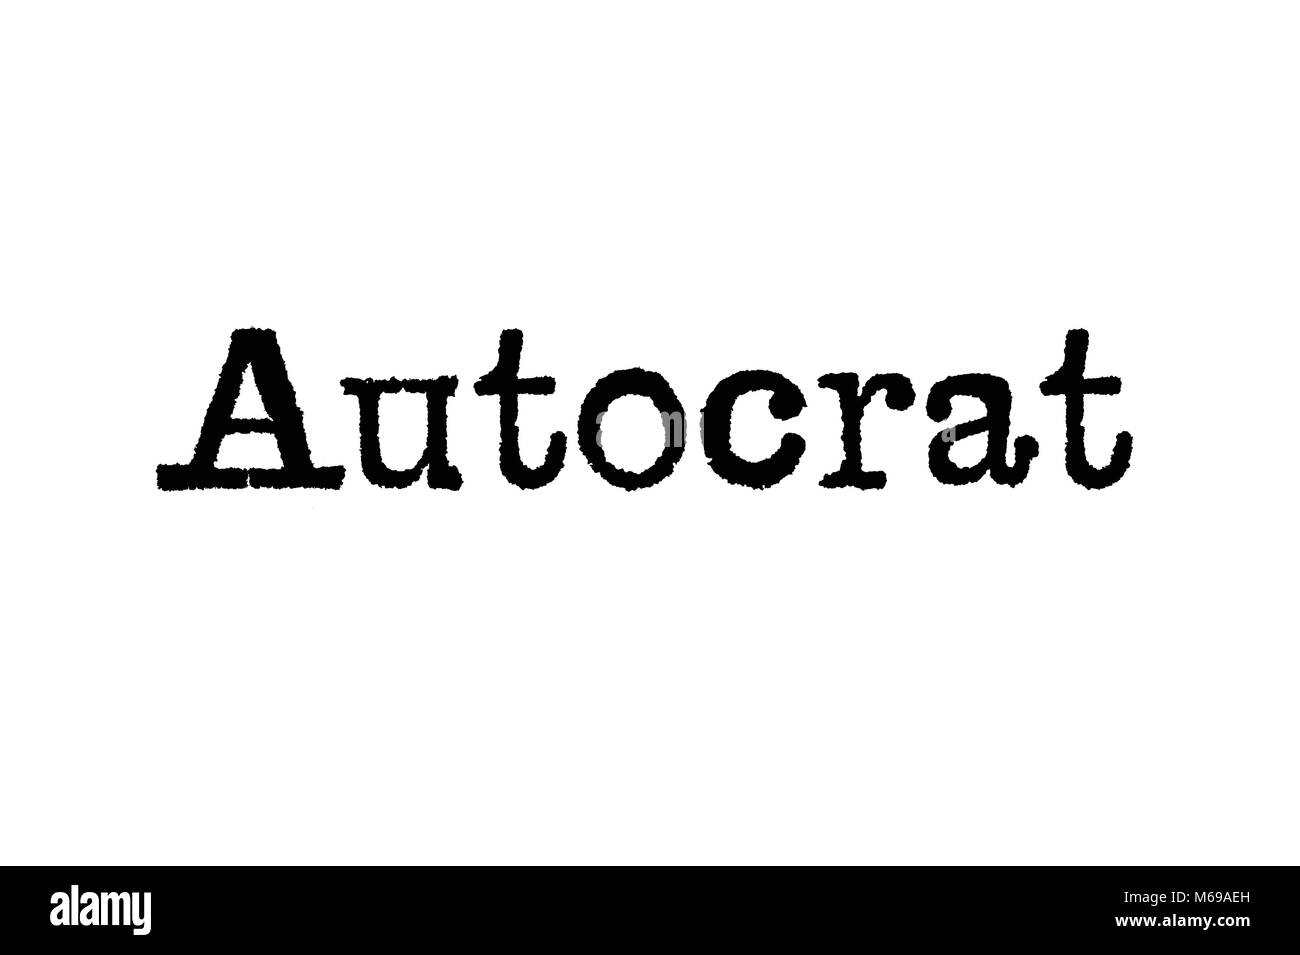 The word Autocrat from a typewriter on a white background - Stock Image